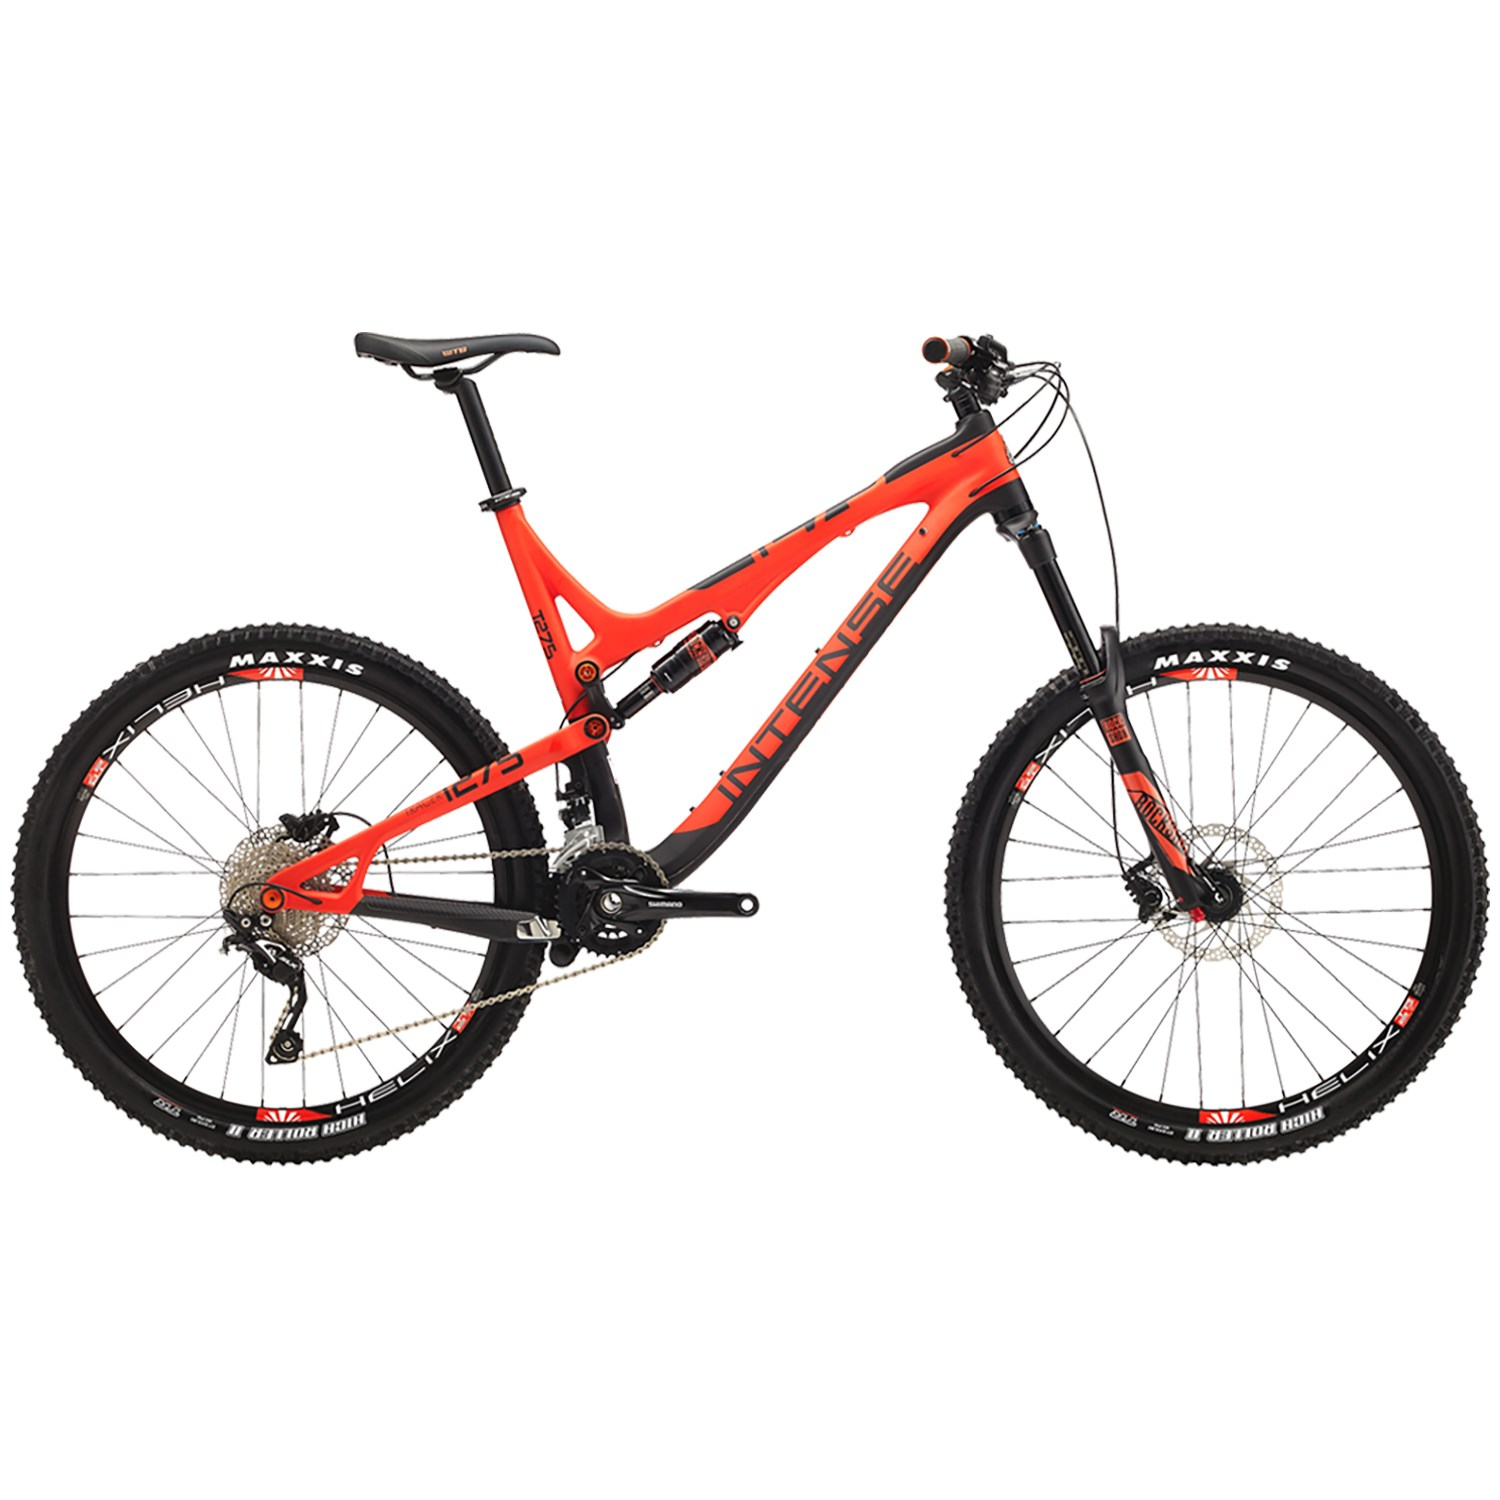 Intense Cycles Tracer 275c Foundation Complete Mountain Bike 2016 Evo Founded in 1993, is an innovator in the mountain bike industry with bold, striking designs intense for life. intense cycles tracer 275c foundation complete mountain bike 2016